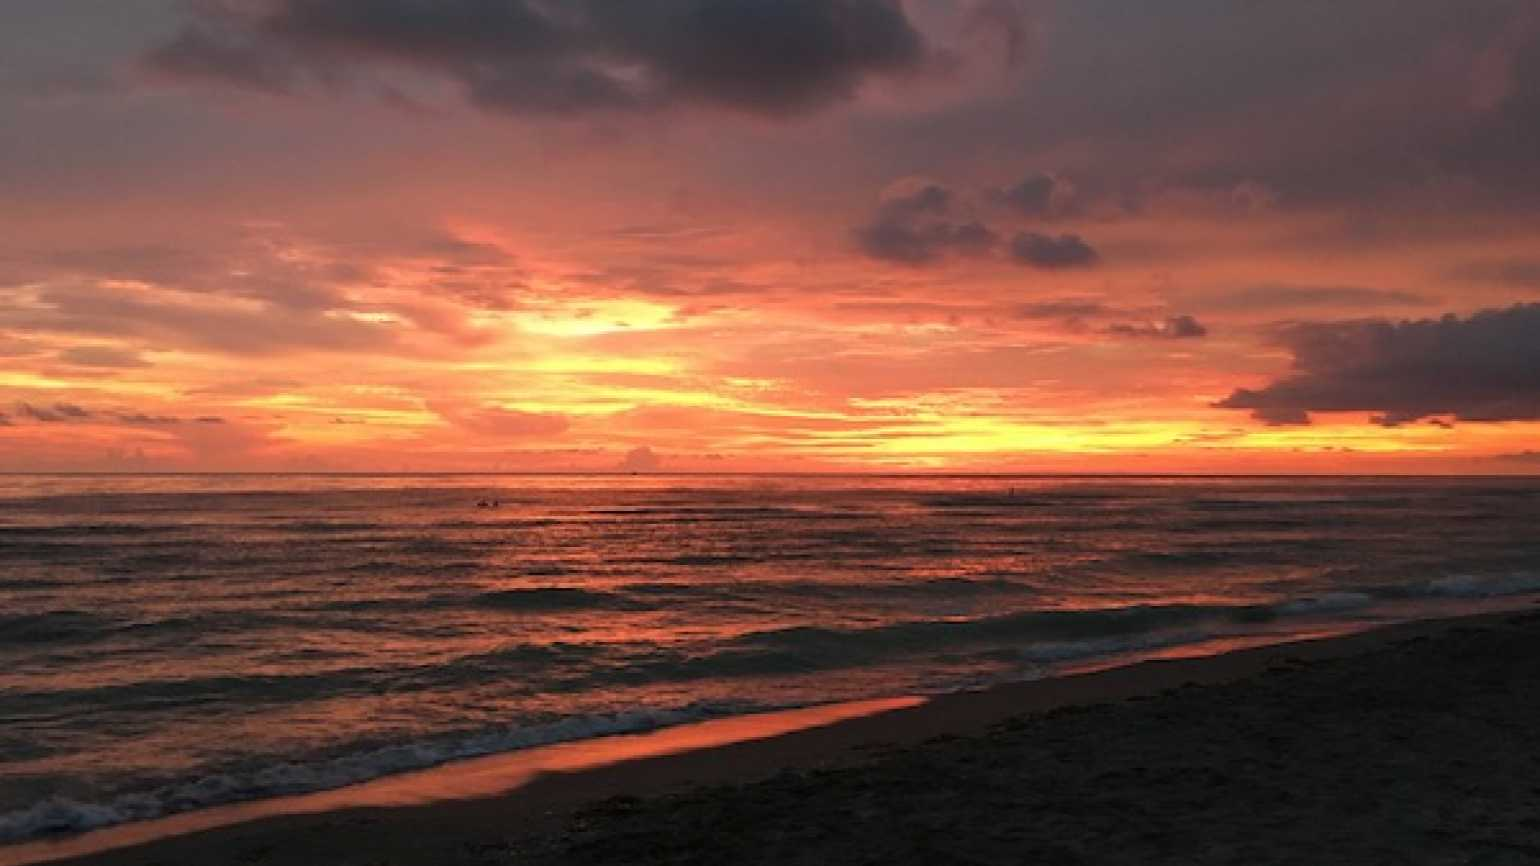 The wonder of a sunset at the beach. Photo by Diana Aydin.